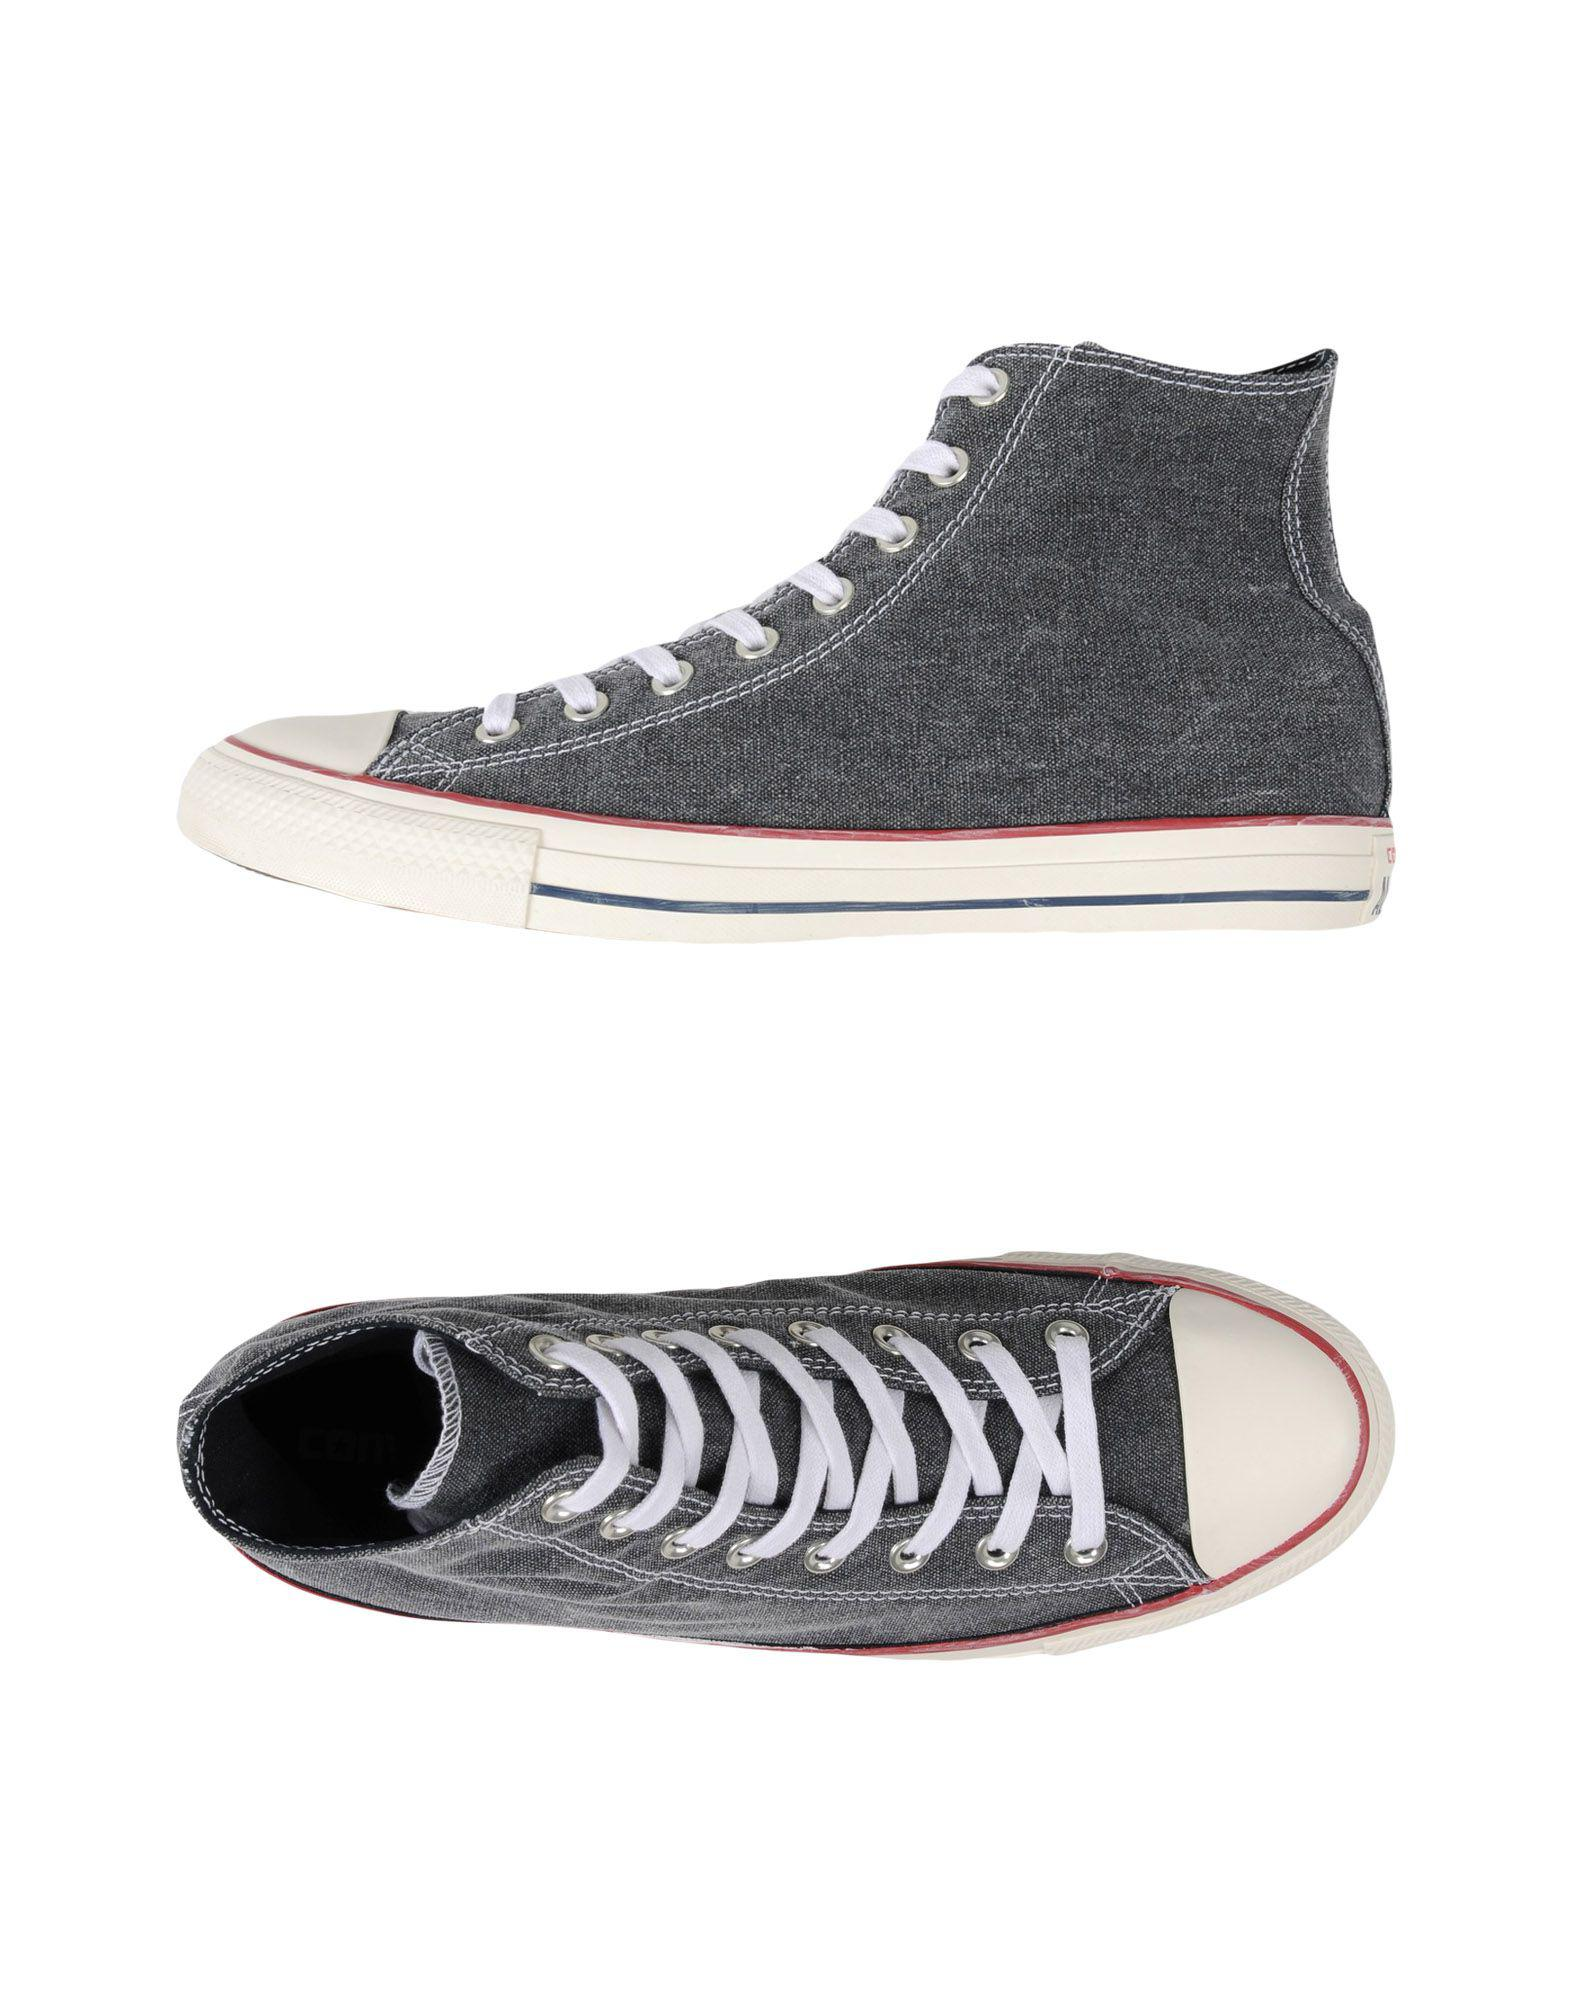 8c2a18aa5e3b Converse High-tops   Sneakers in Gray for Men - Lyst